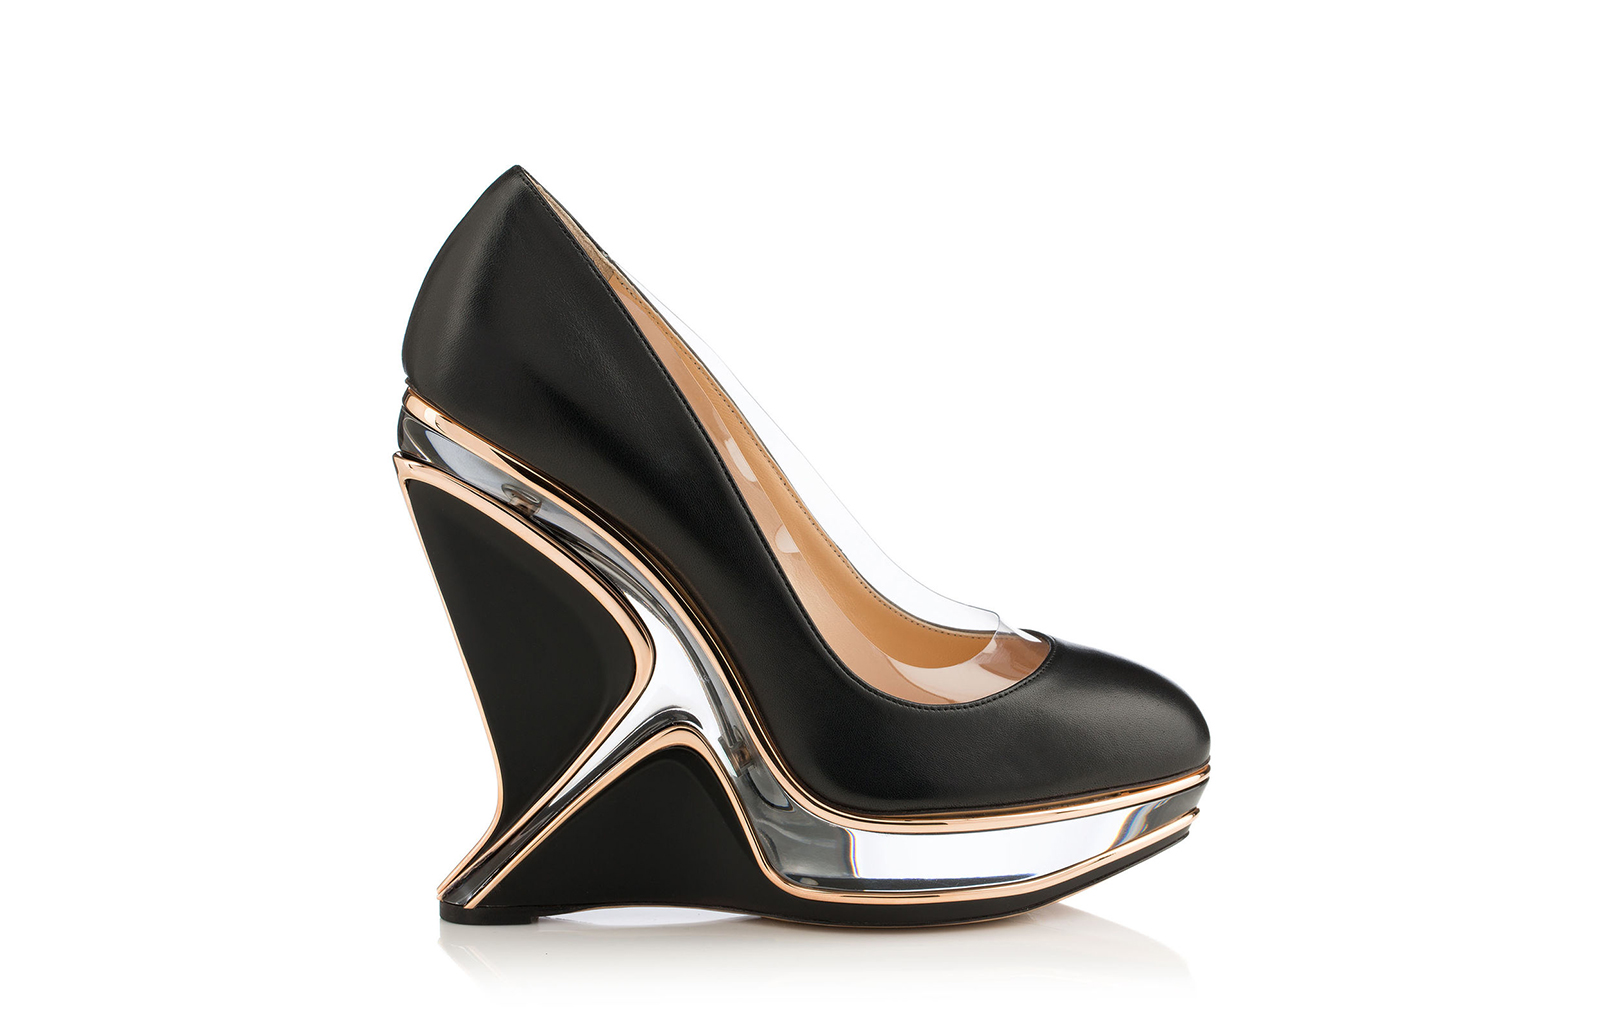 The Spaces Xmas gift guide - Zaha Hadid shoes